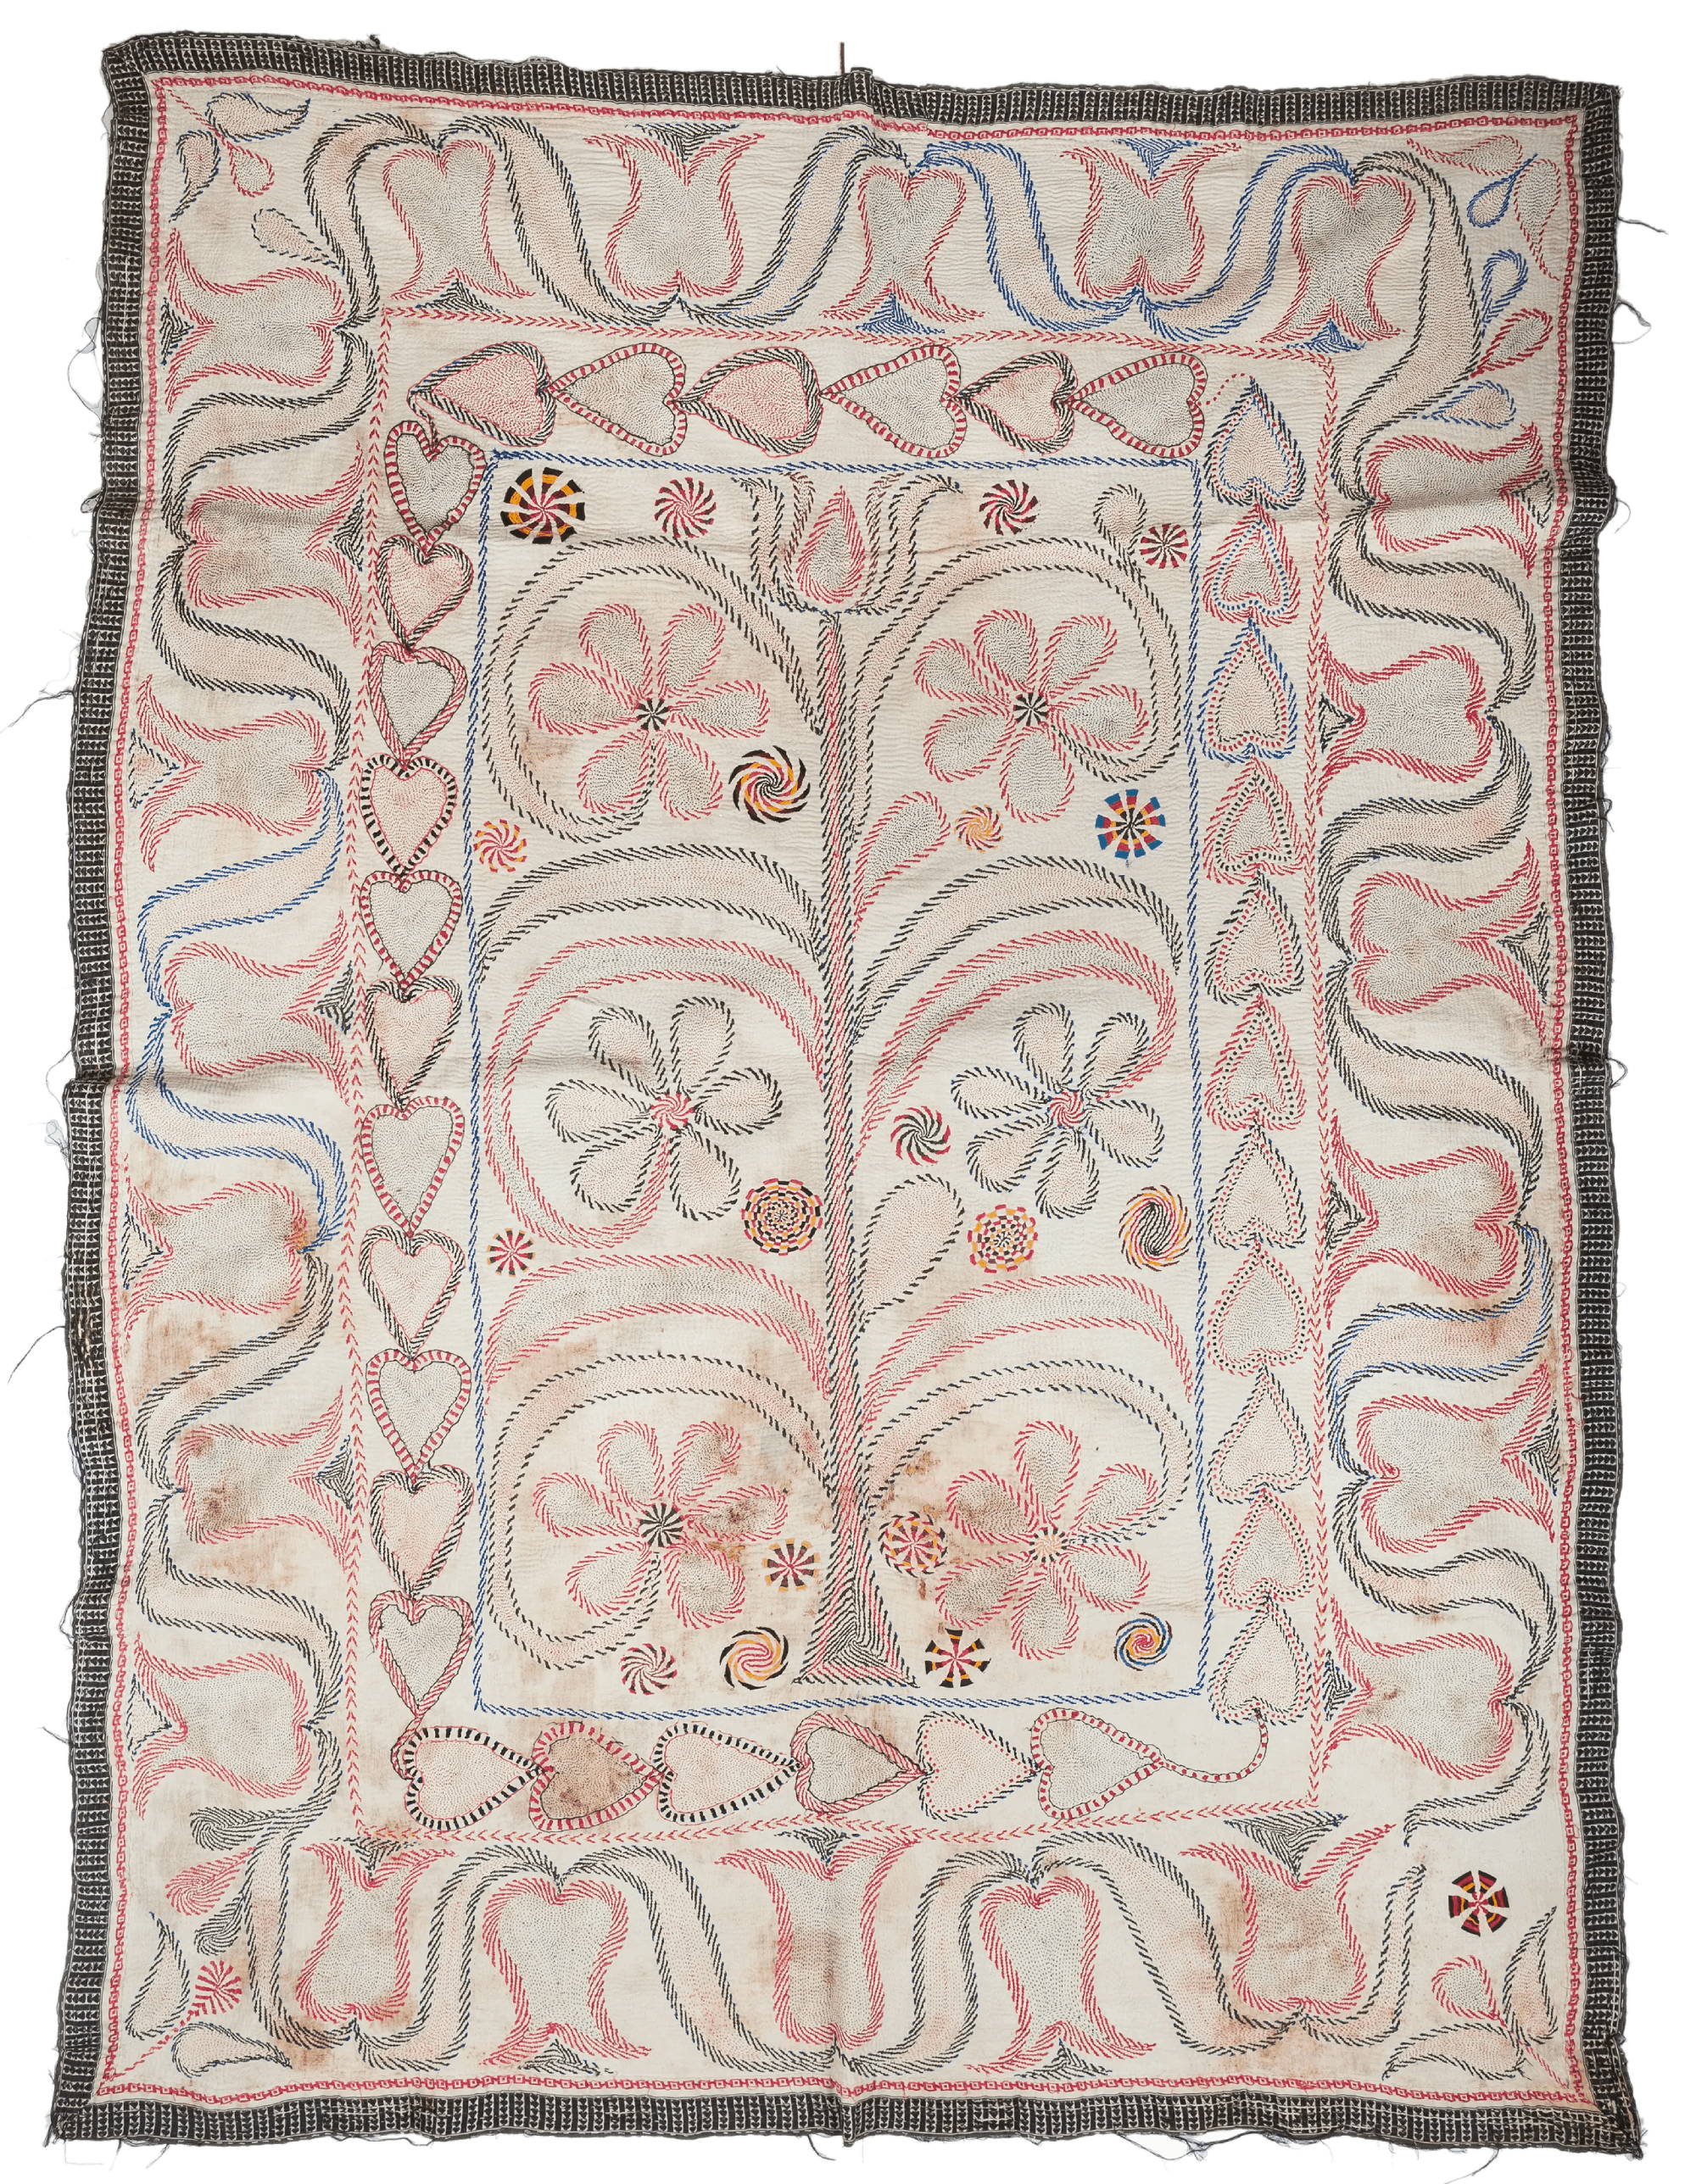 A kantha with black border, and red and black floral motifs